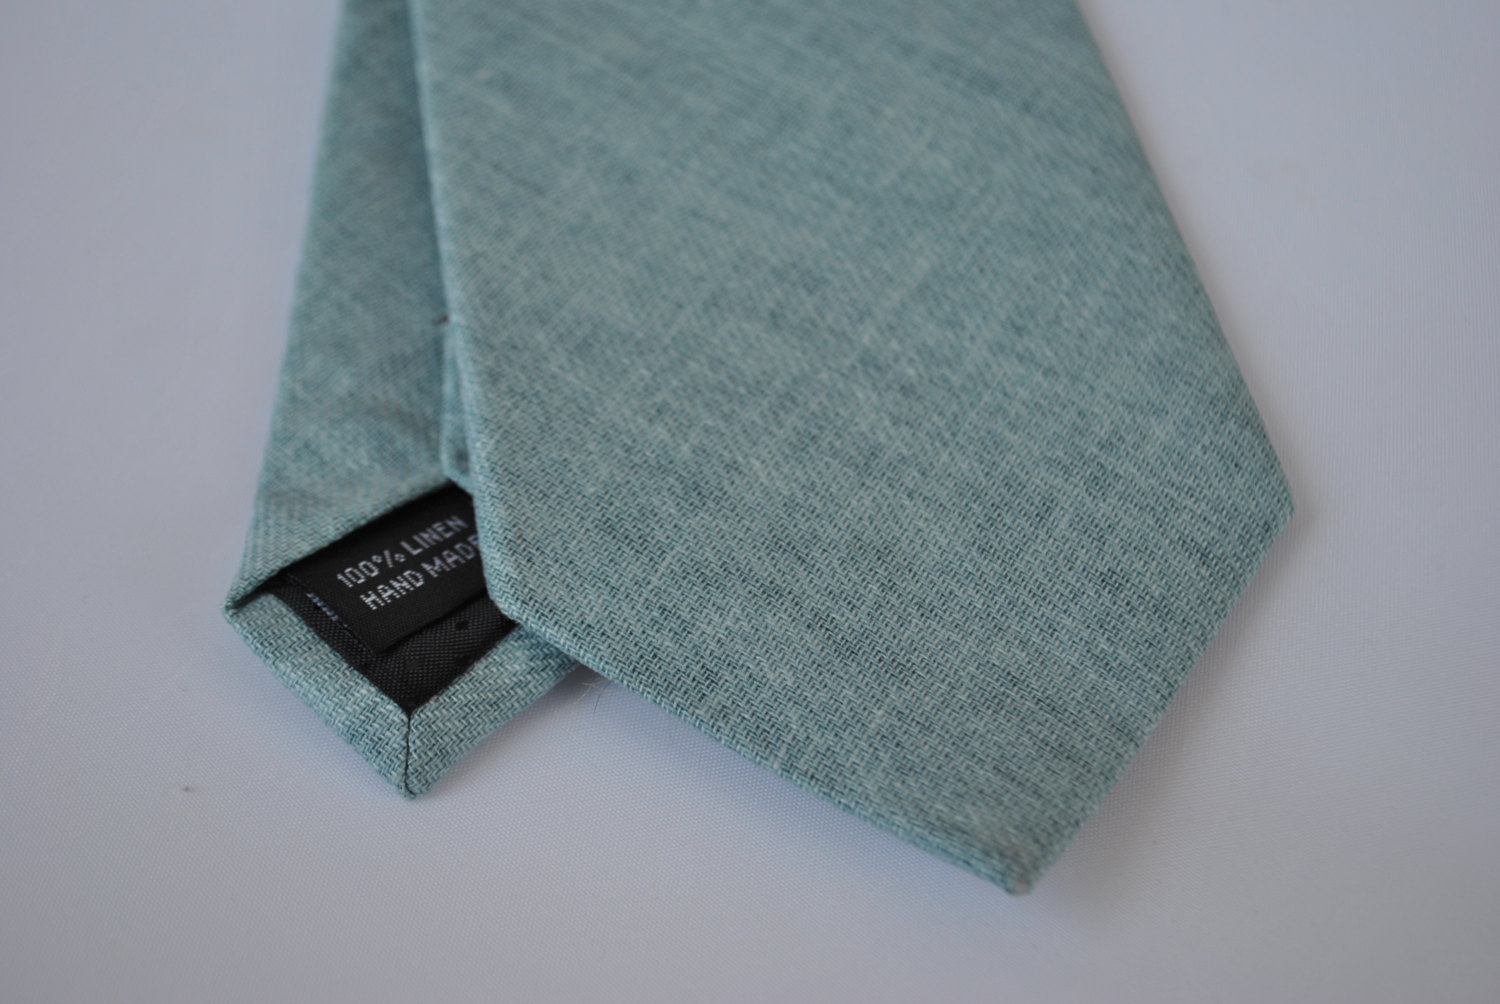 Plain Sage Pale Green Textured Linen Tie Or Pocket Square